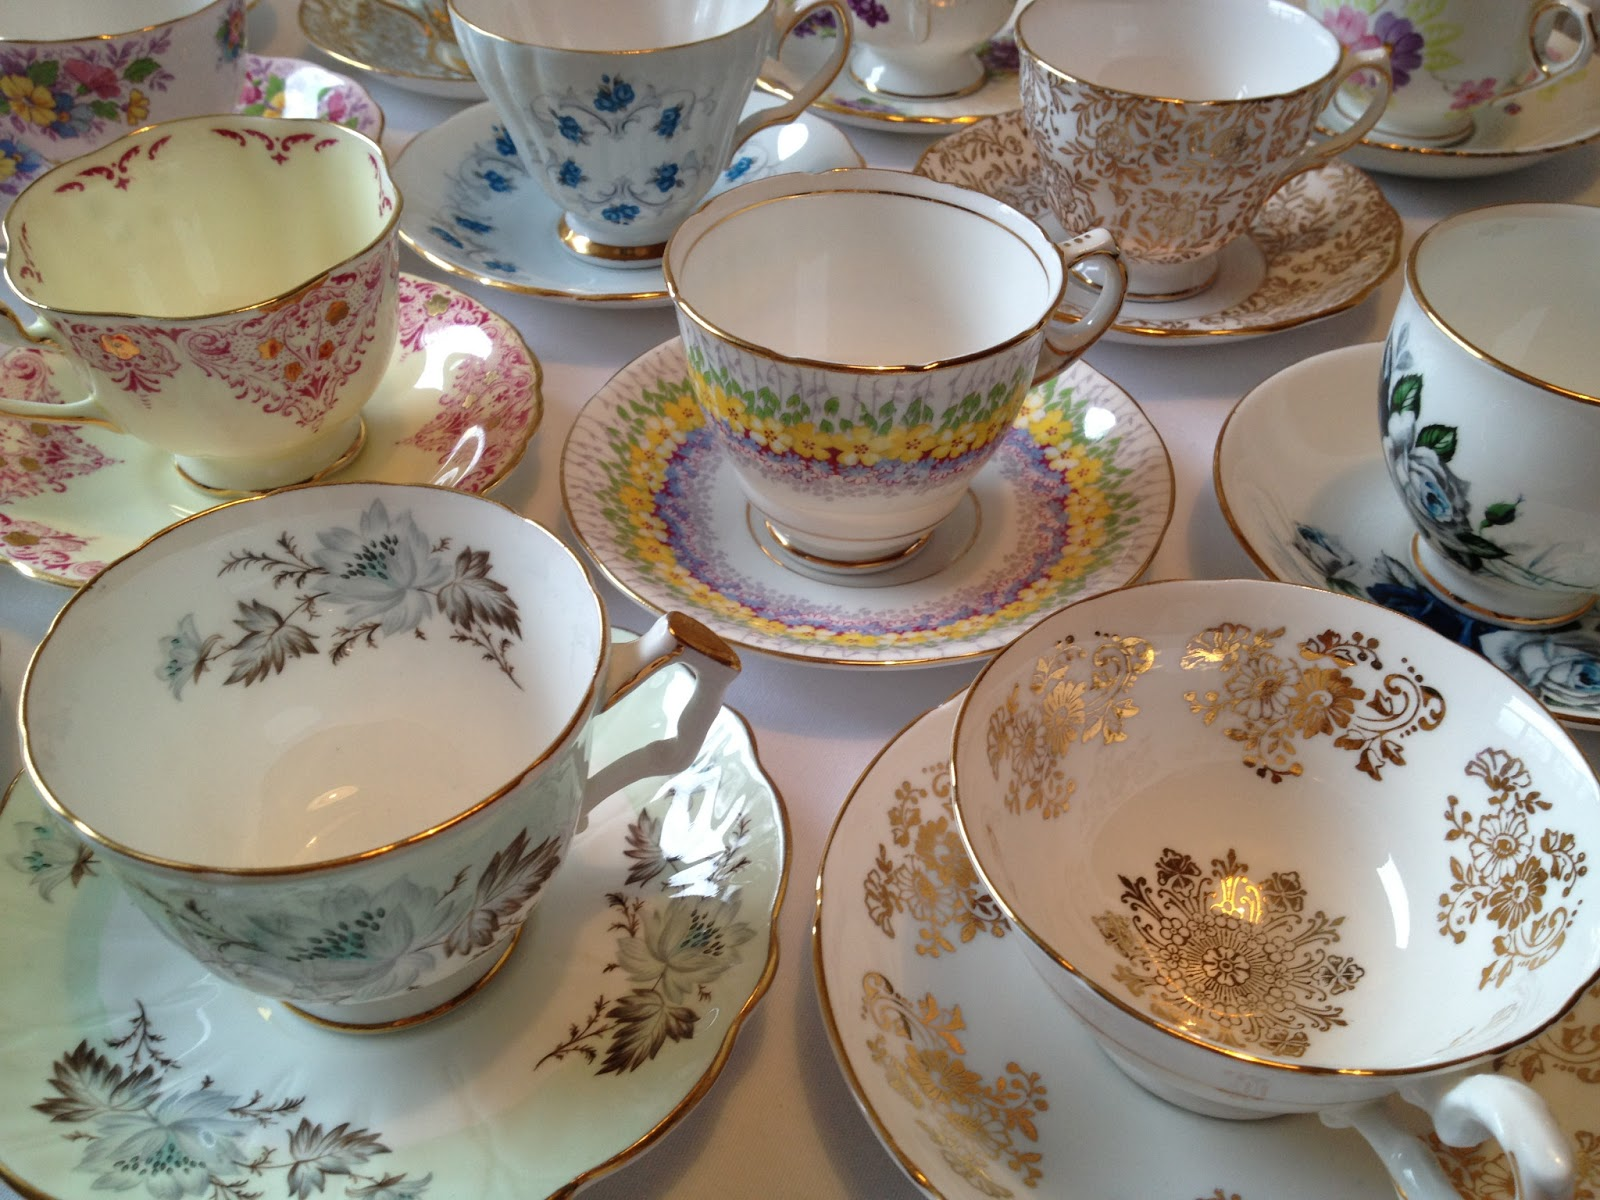 TEACUP COLLECTING